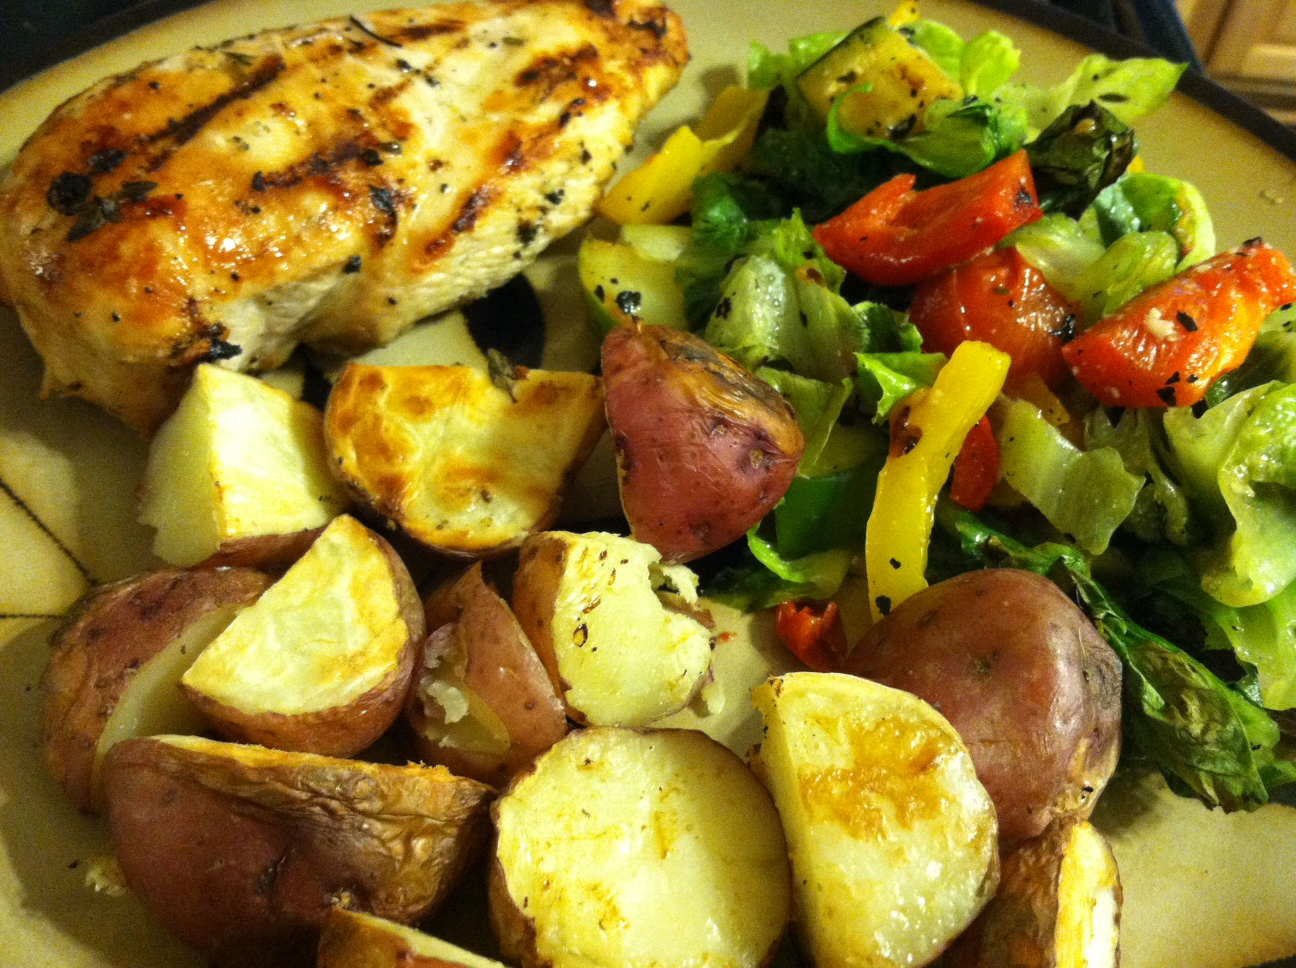 ... on the Grill: Garlic Marinated Chicken Cutlets with Grilled Potatoes